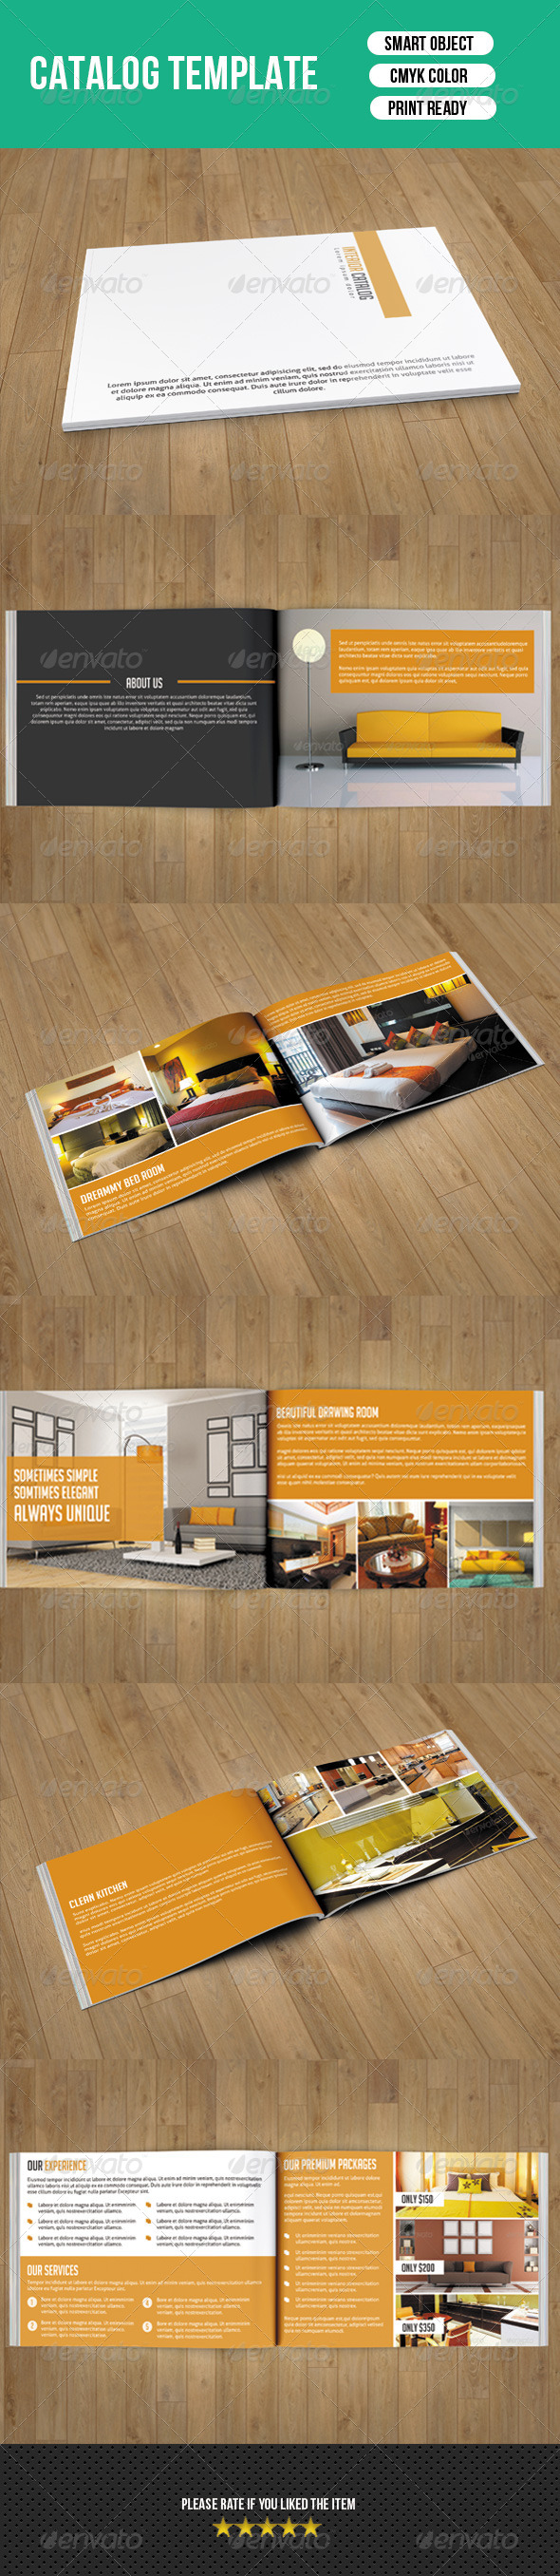 Interior Catalog Template-V03